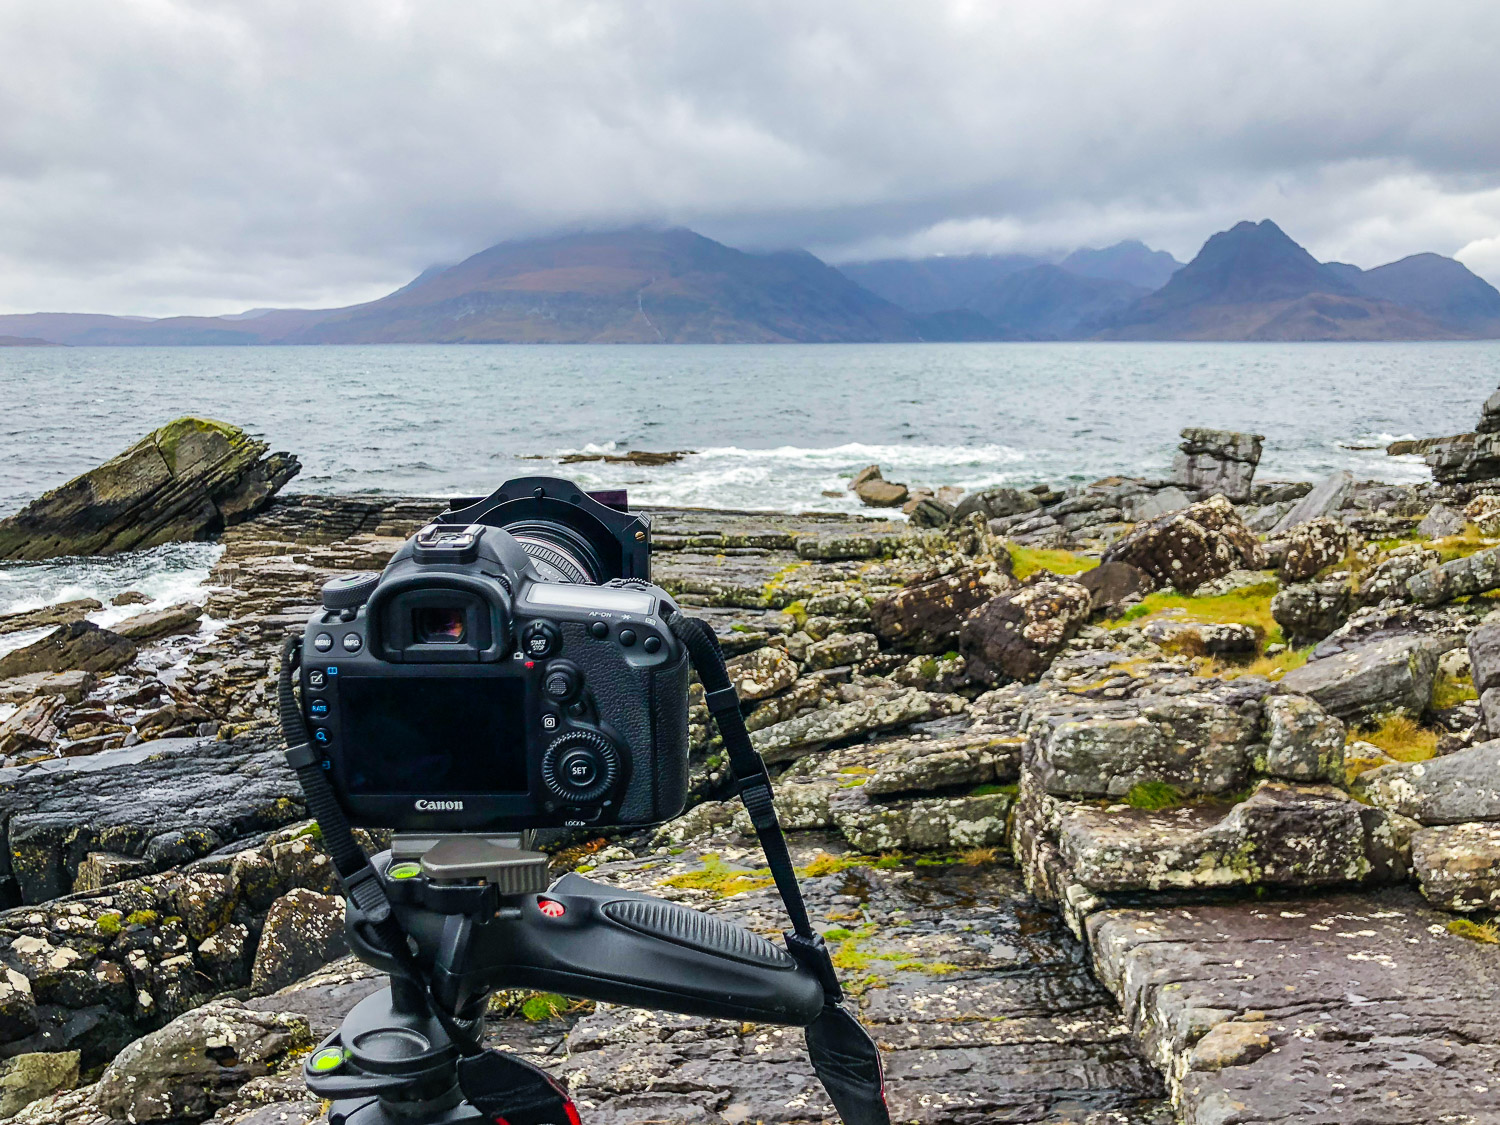 1 - 7 Ways To Take Your Photography To The Next Level